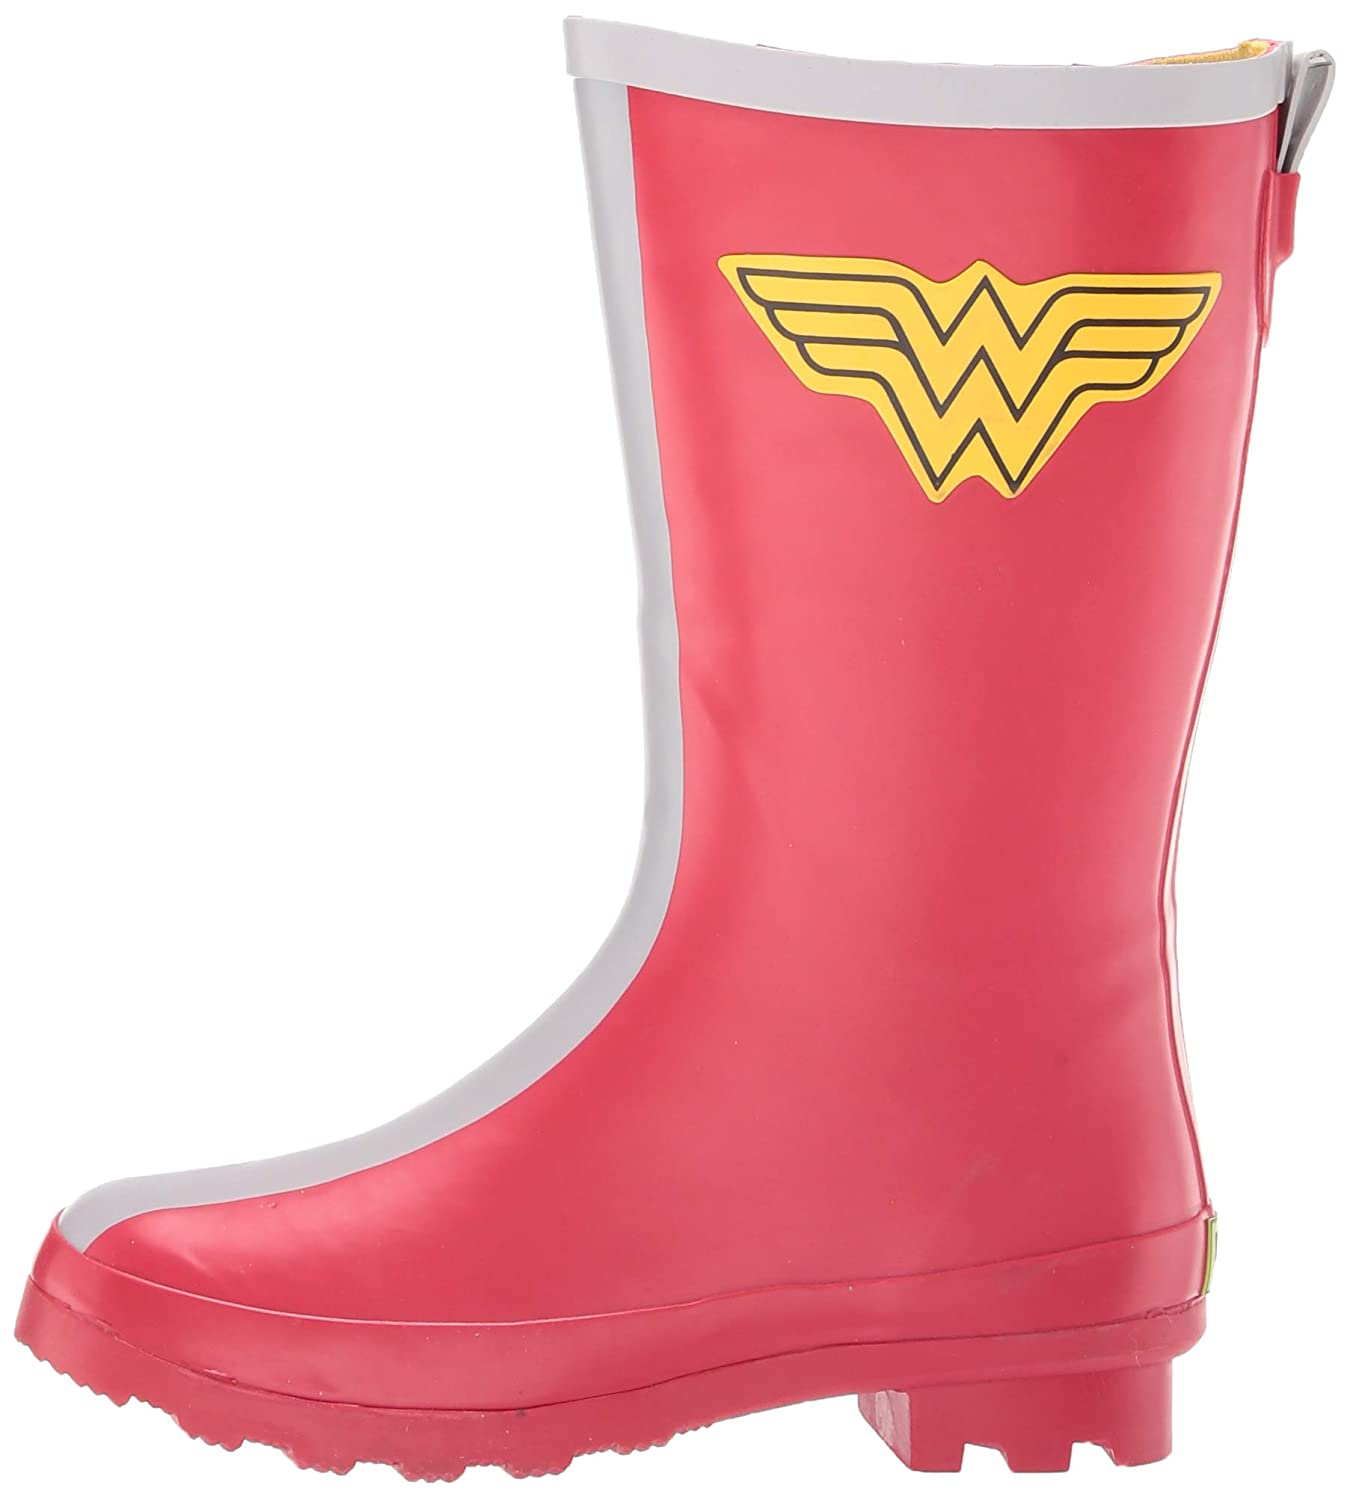 dfd6ea12 Western Chief Kids Youth Classic Tall Wonder Woman Rain Boot: Buy ...